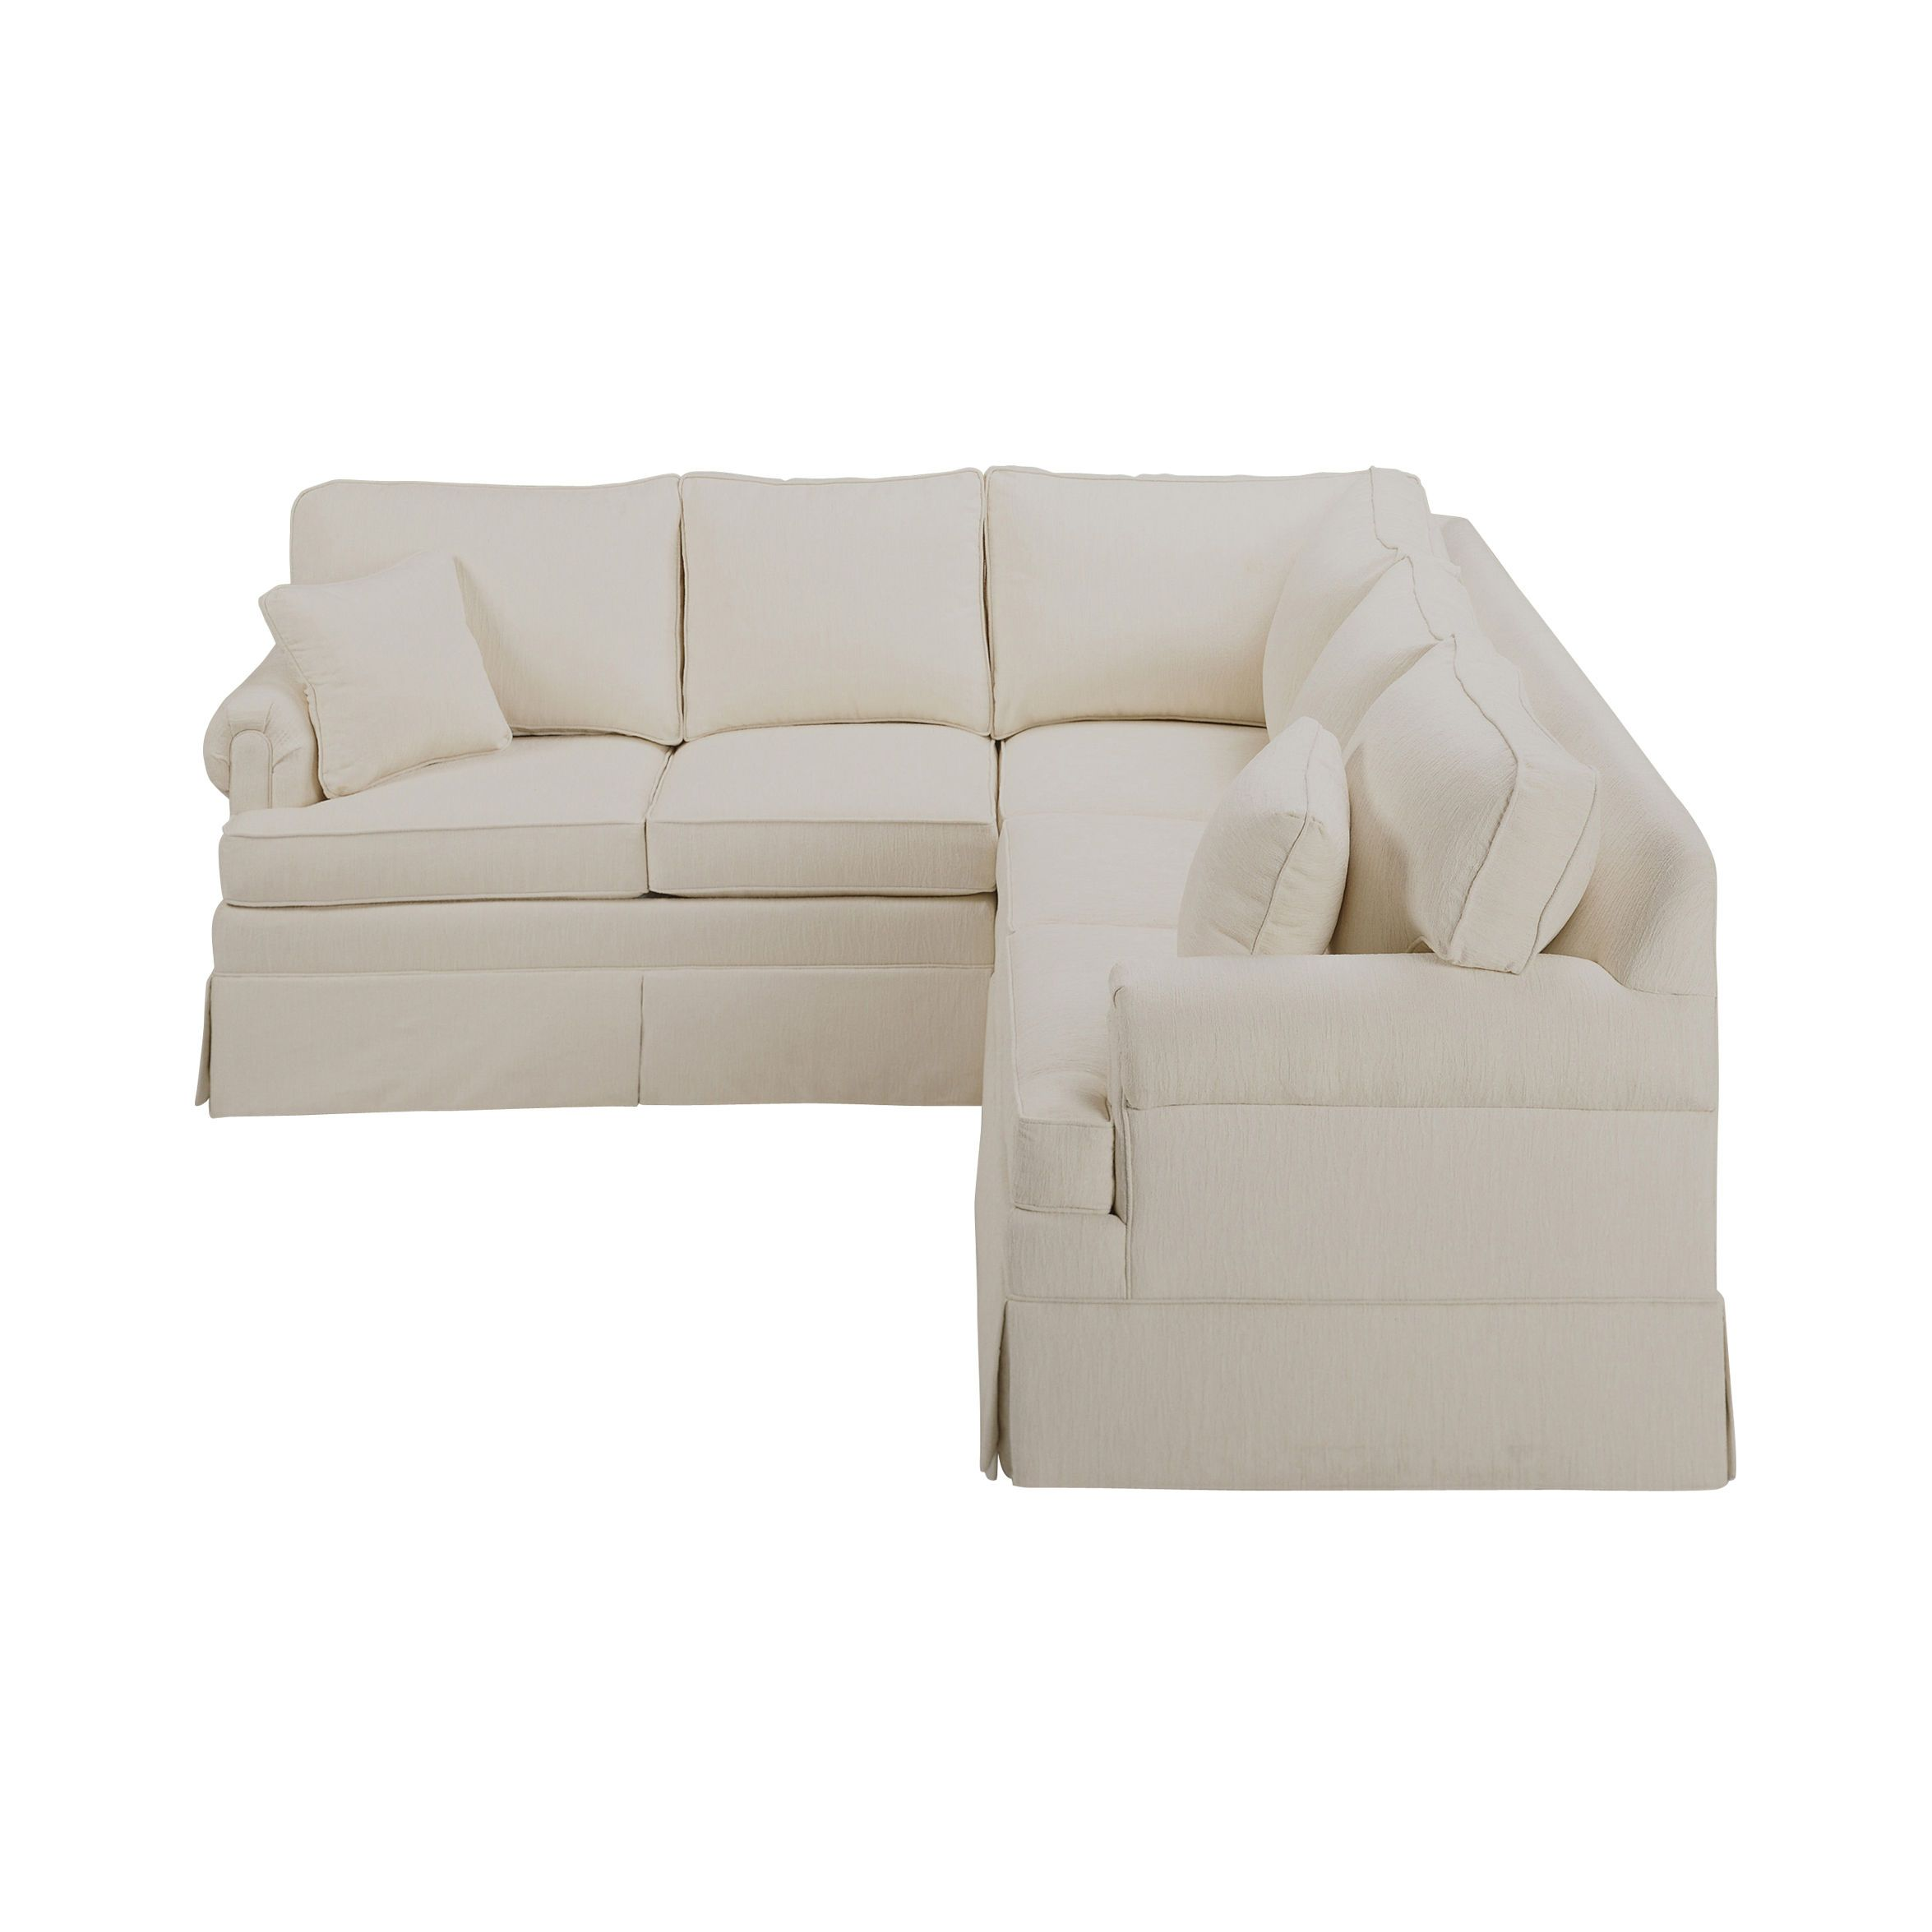 Paramount Sectional Ethan Allen Us 87 X 87 Good Reviews